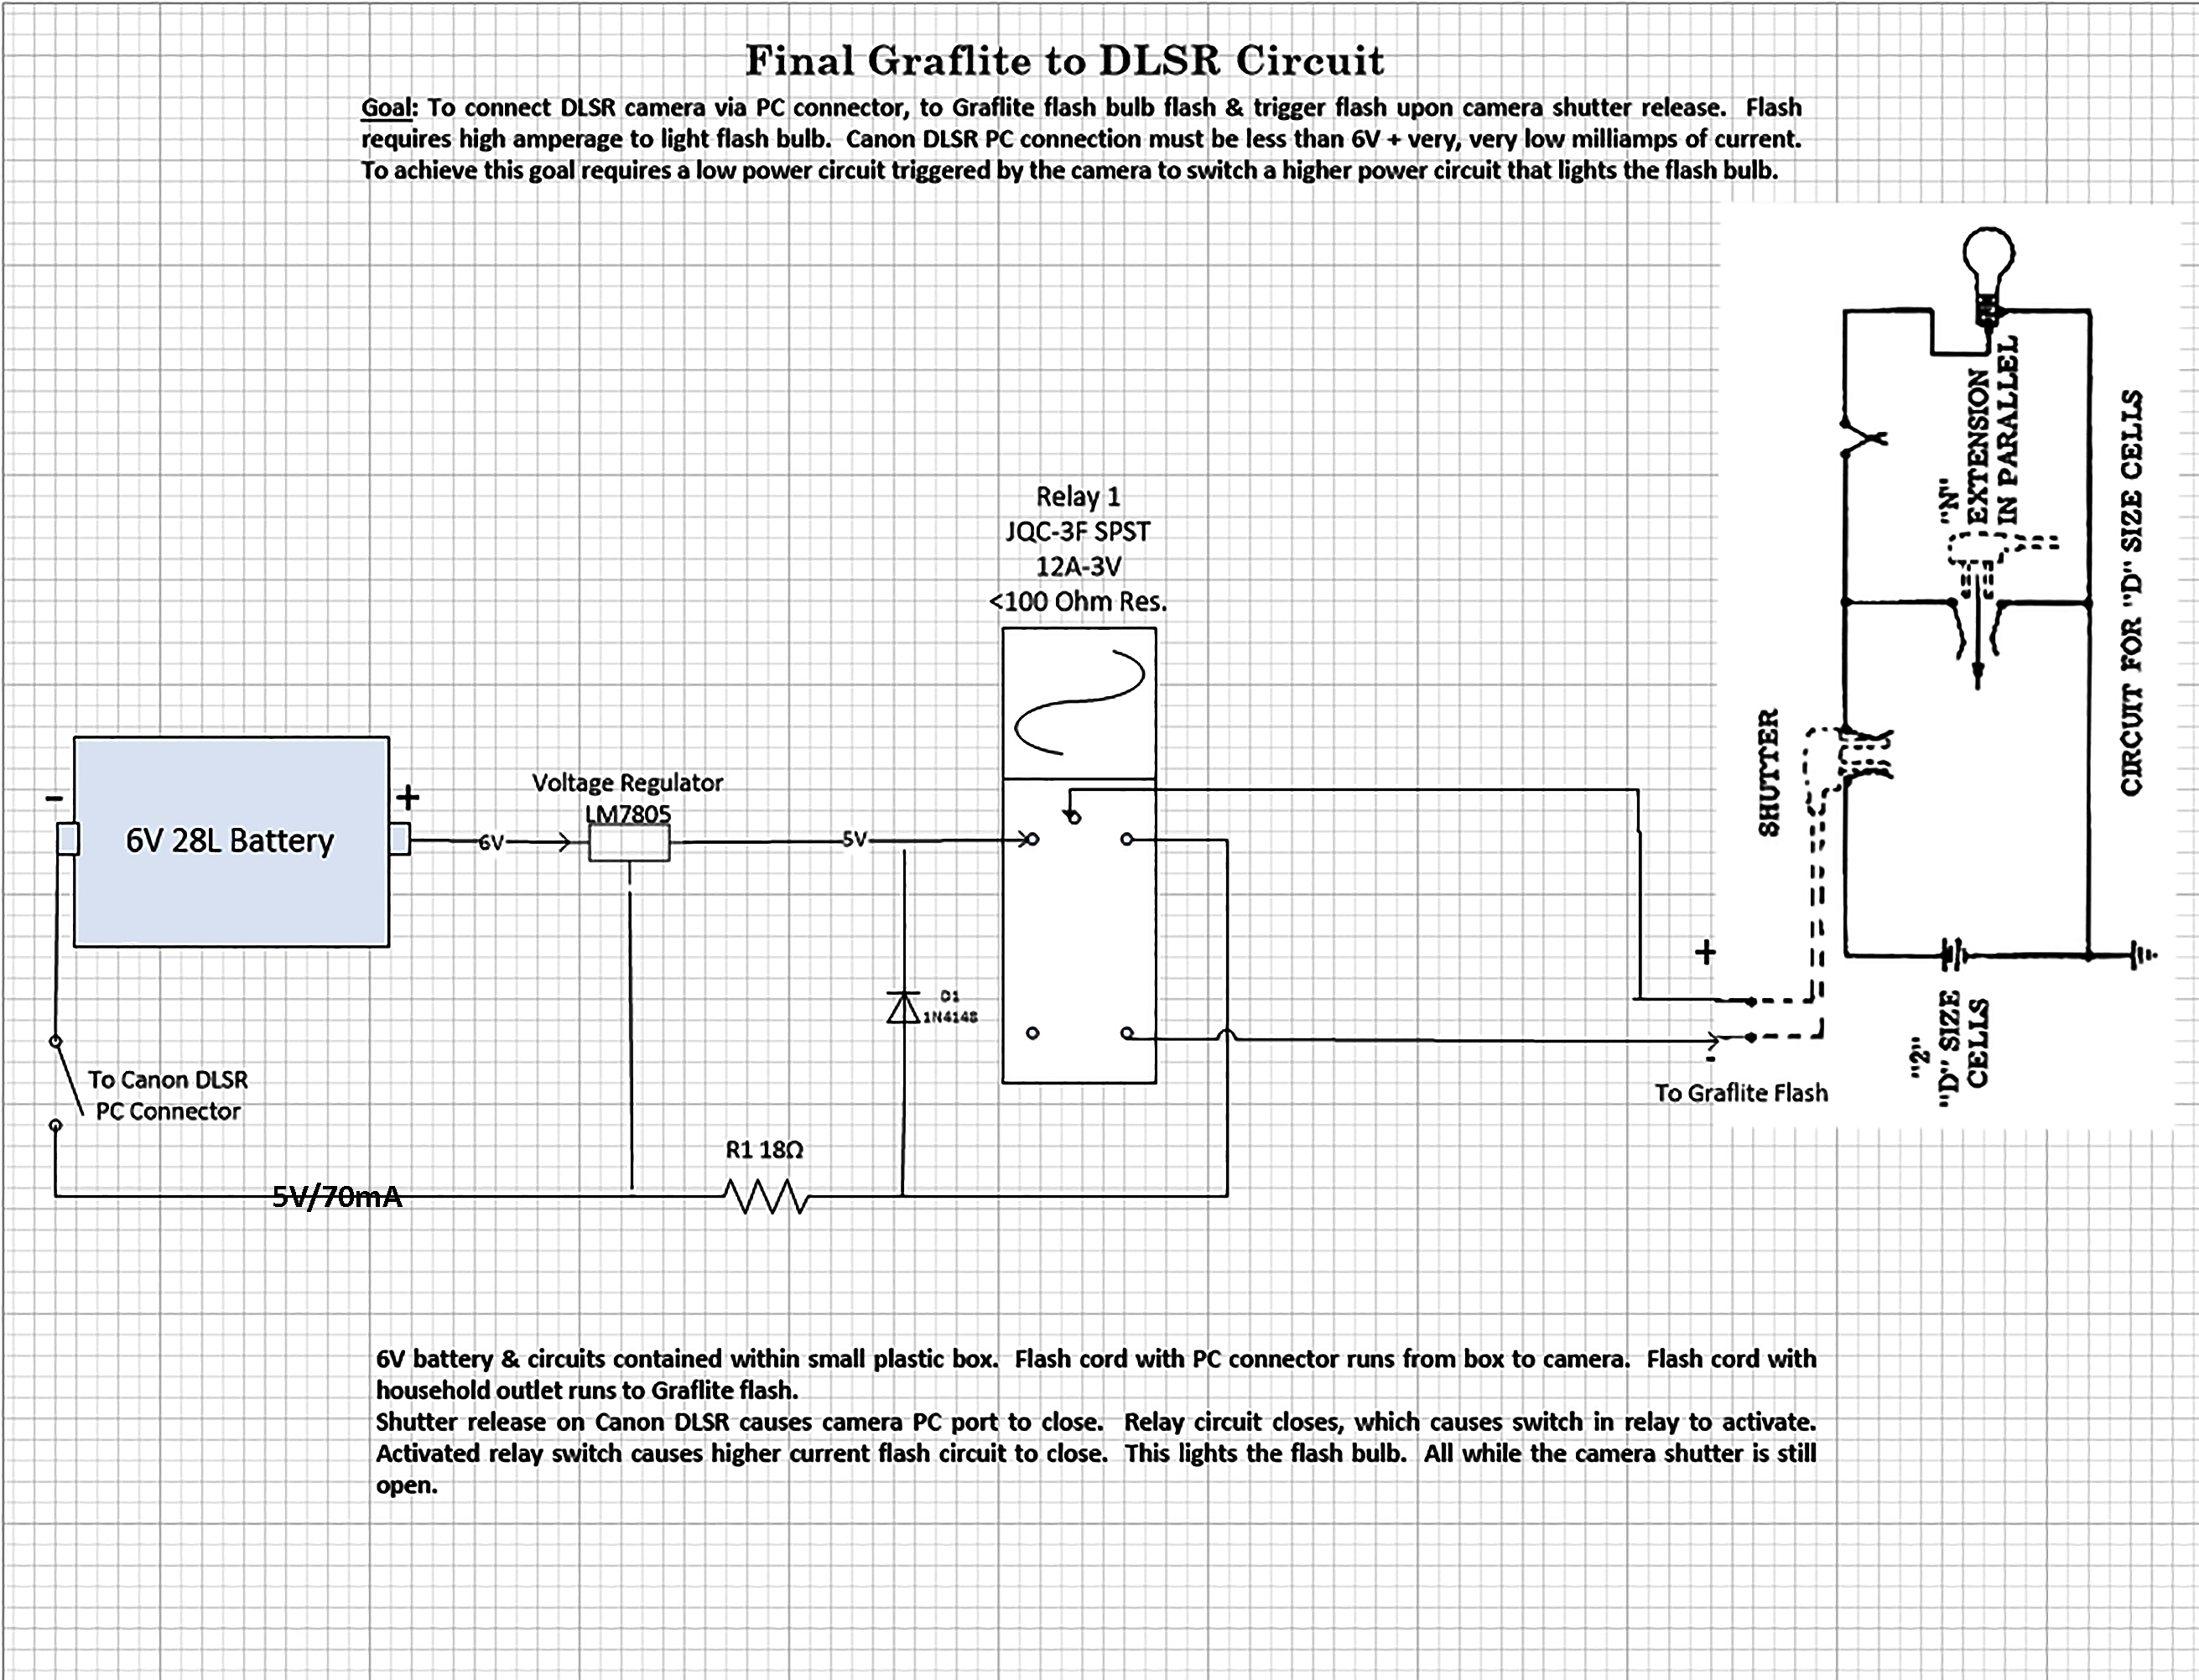 View Topic Graphlite Flash Trigger Voltage Relay Circuit Design Please Let Me Know If You See Any Discrepancies In My I Want To Be Absolutely Sure That This Will Protect Dlsr